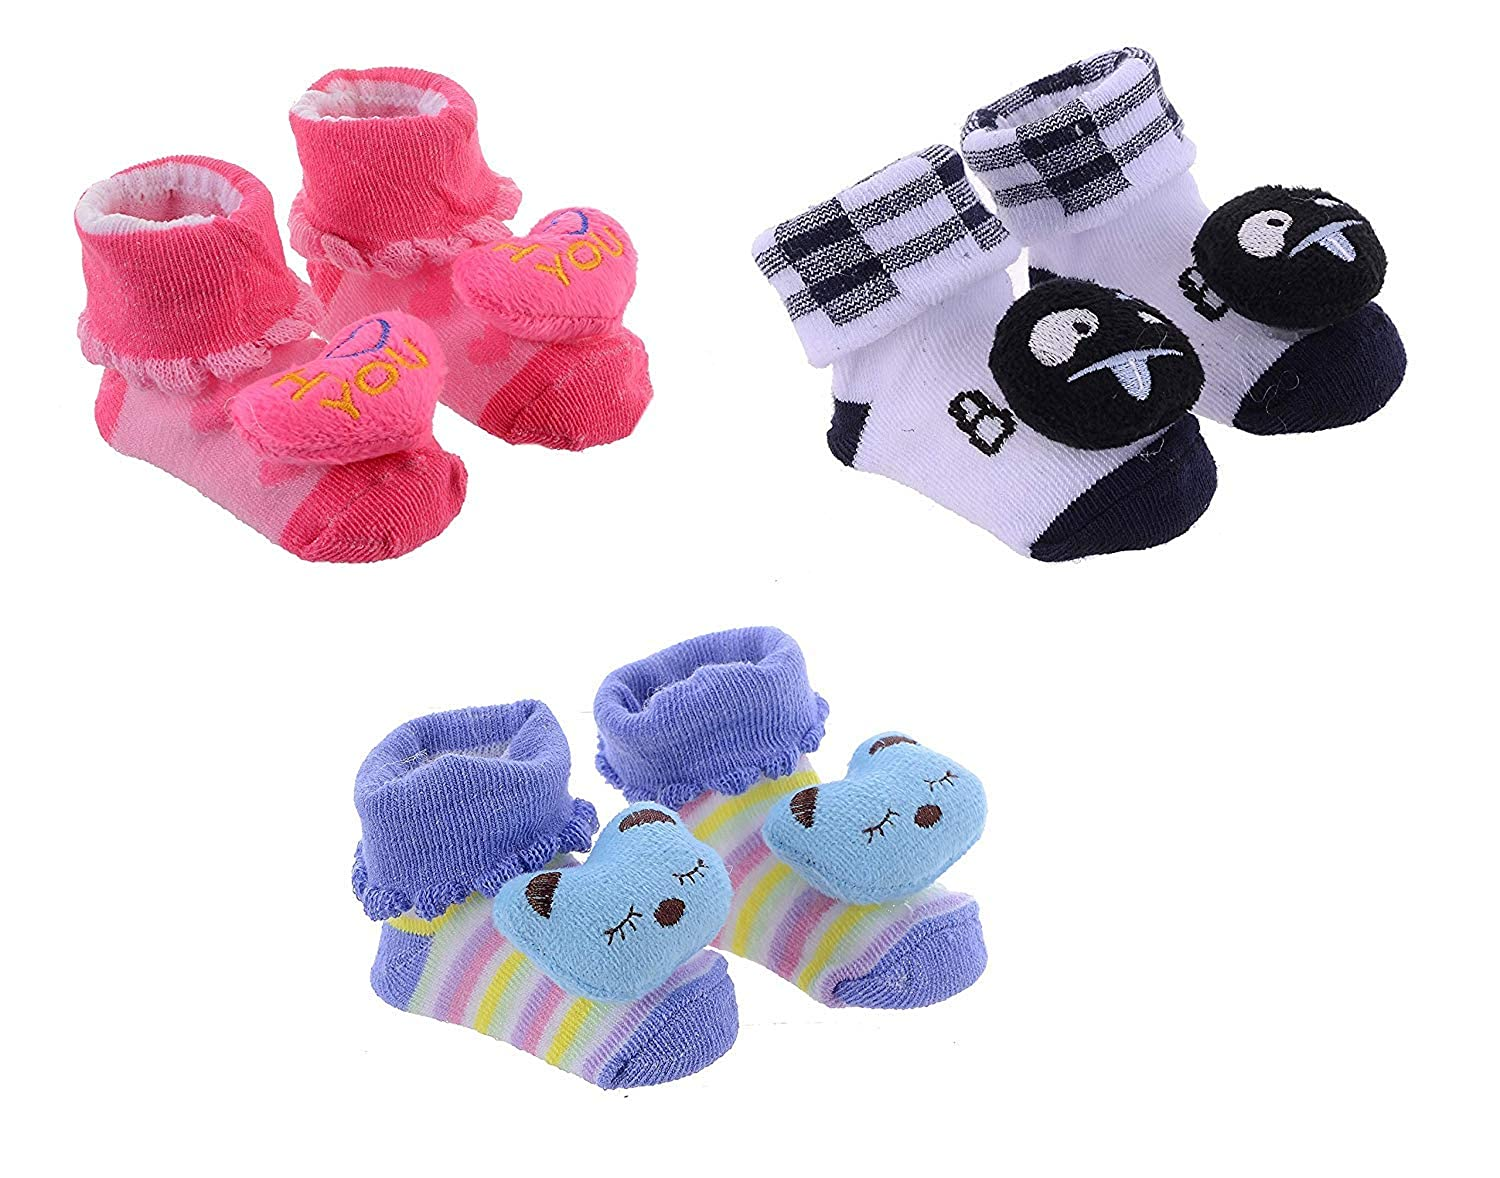 Baby Lounge Baby Girls Bootie Socks /& Headbands Set